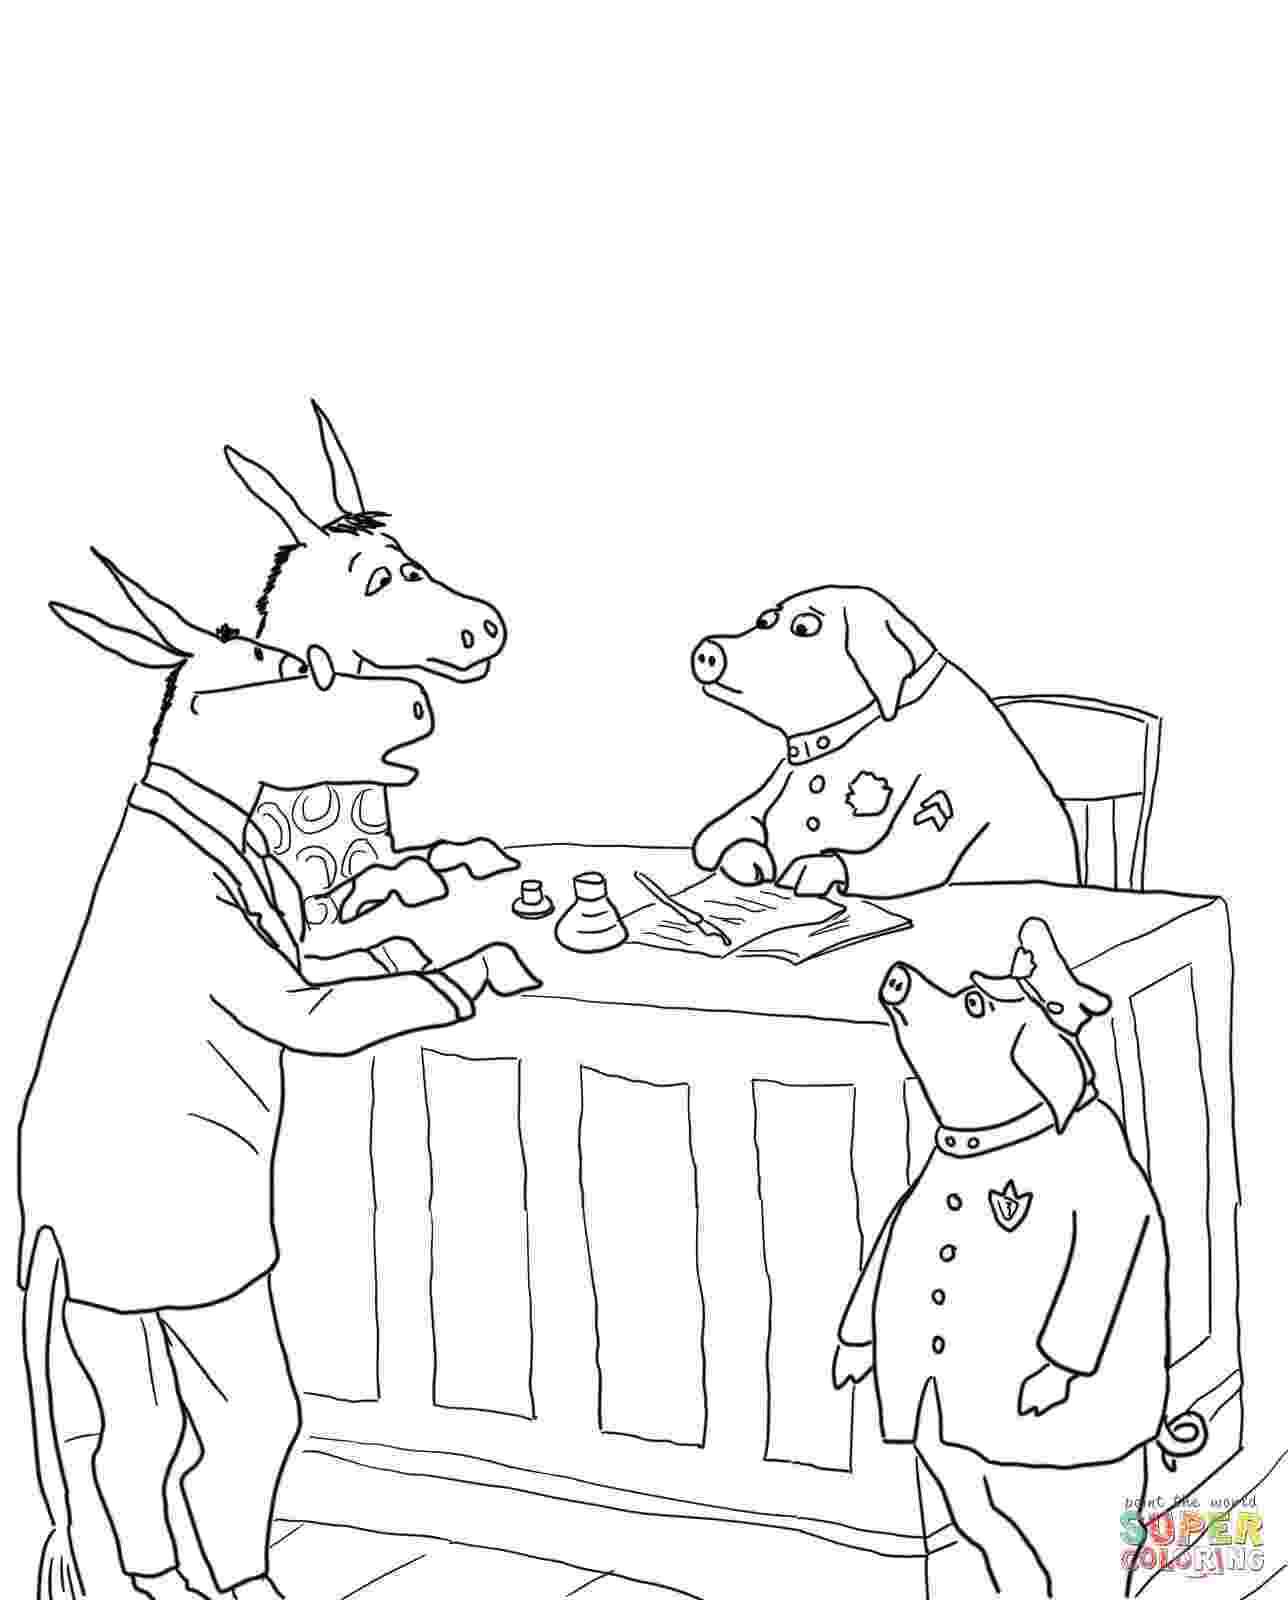 sylvester and the magic pebble coloring page coloring pages sylvester and the magic pebble coloring page pebble the and coloring magic sylvester